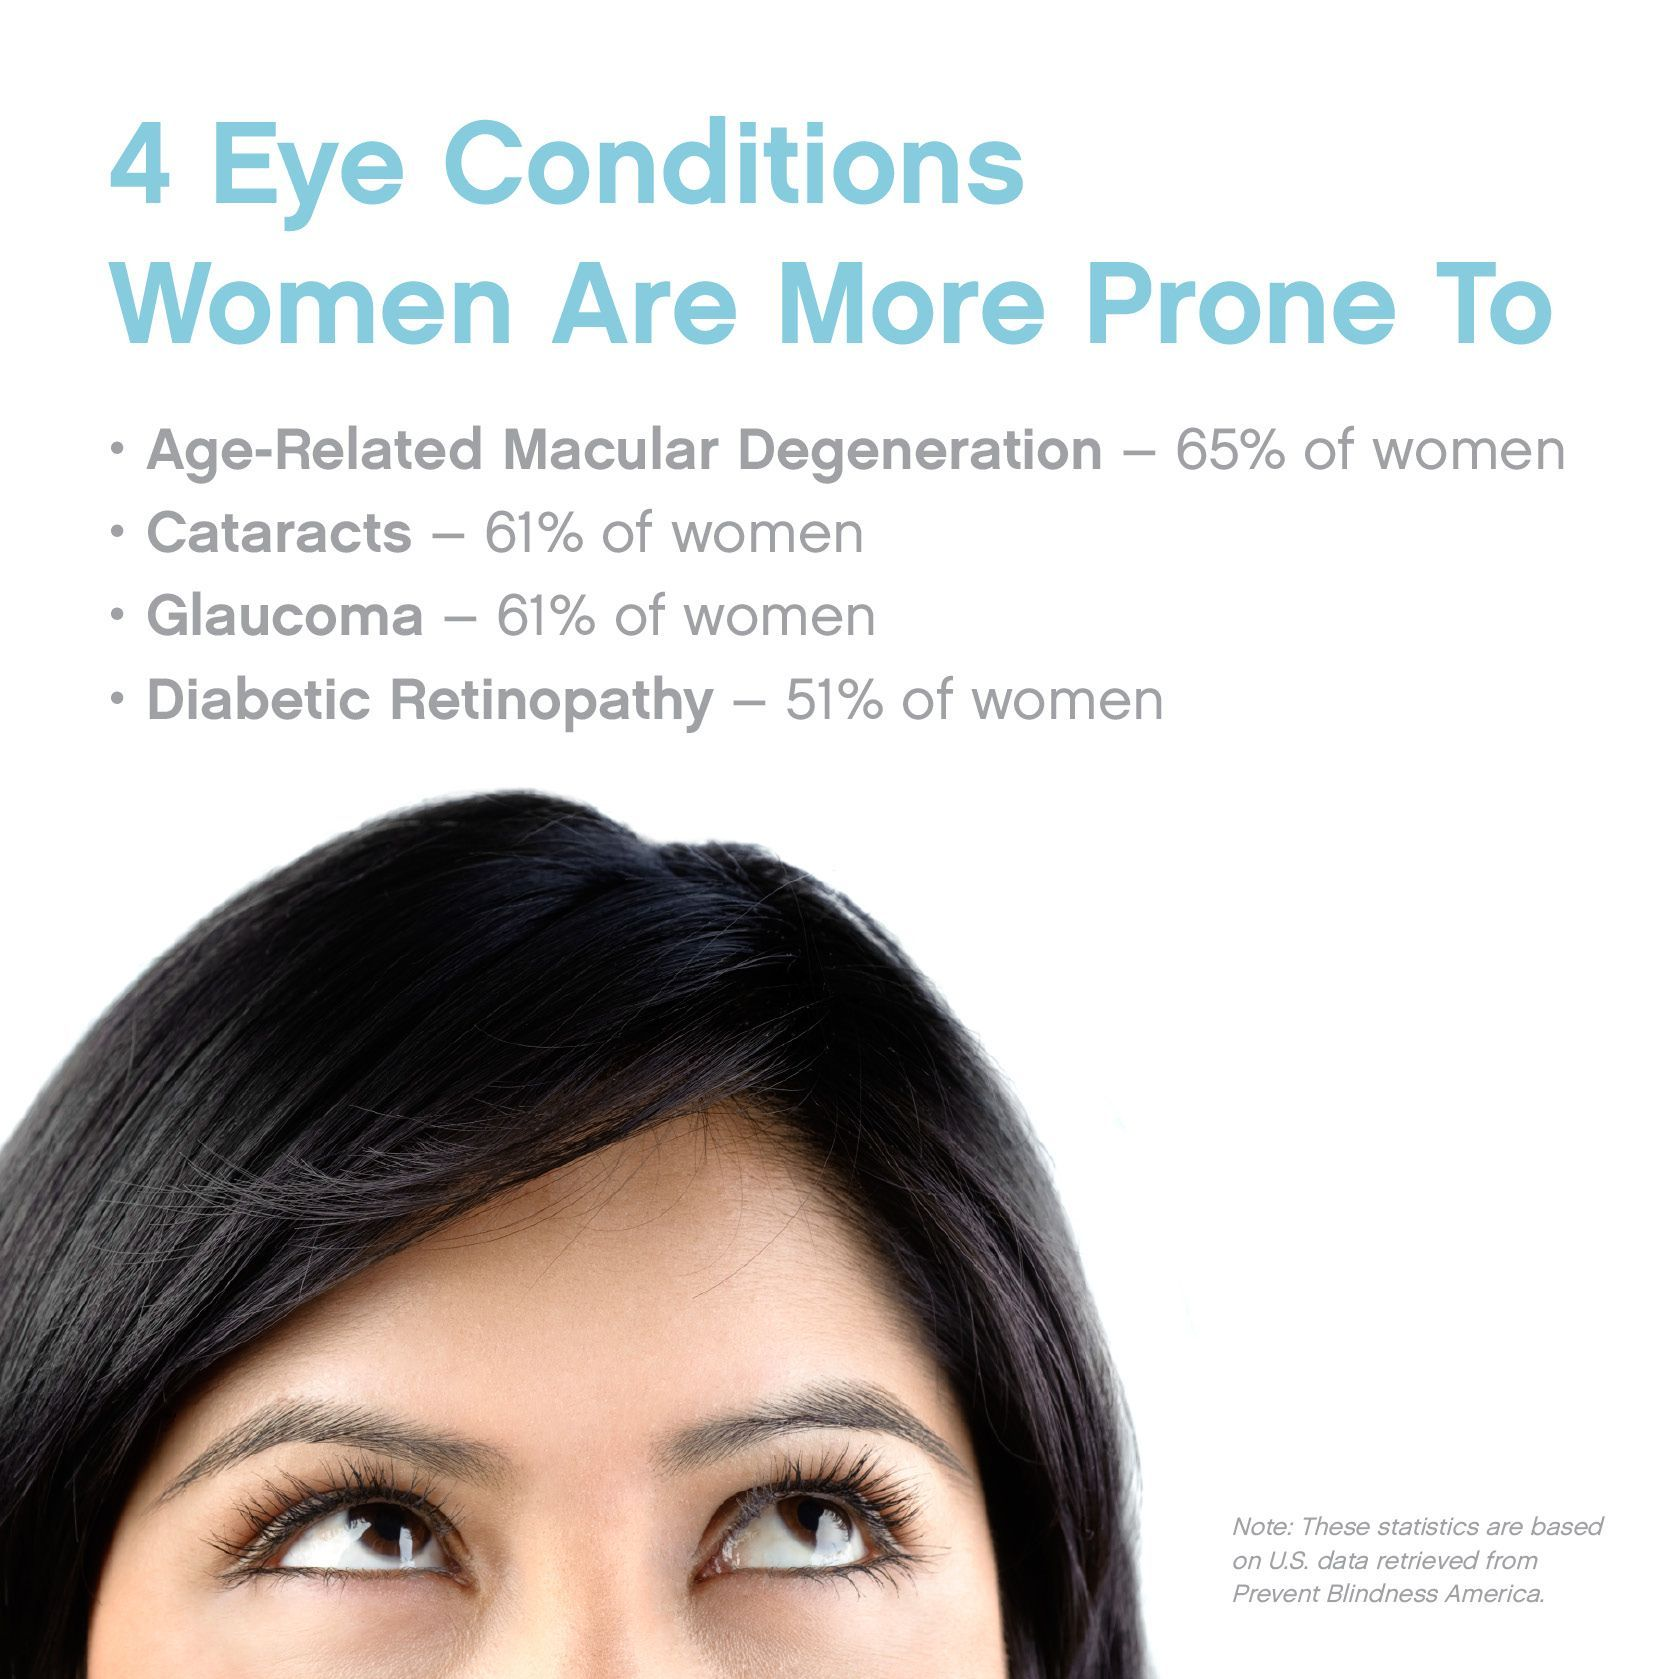 Did you know women are more prone to some eye conditions